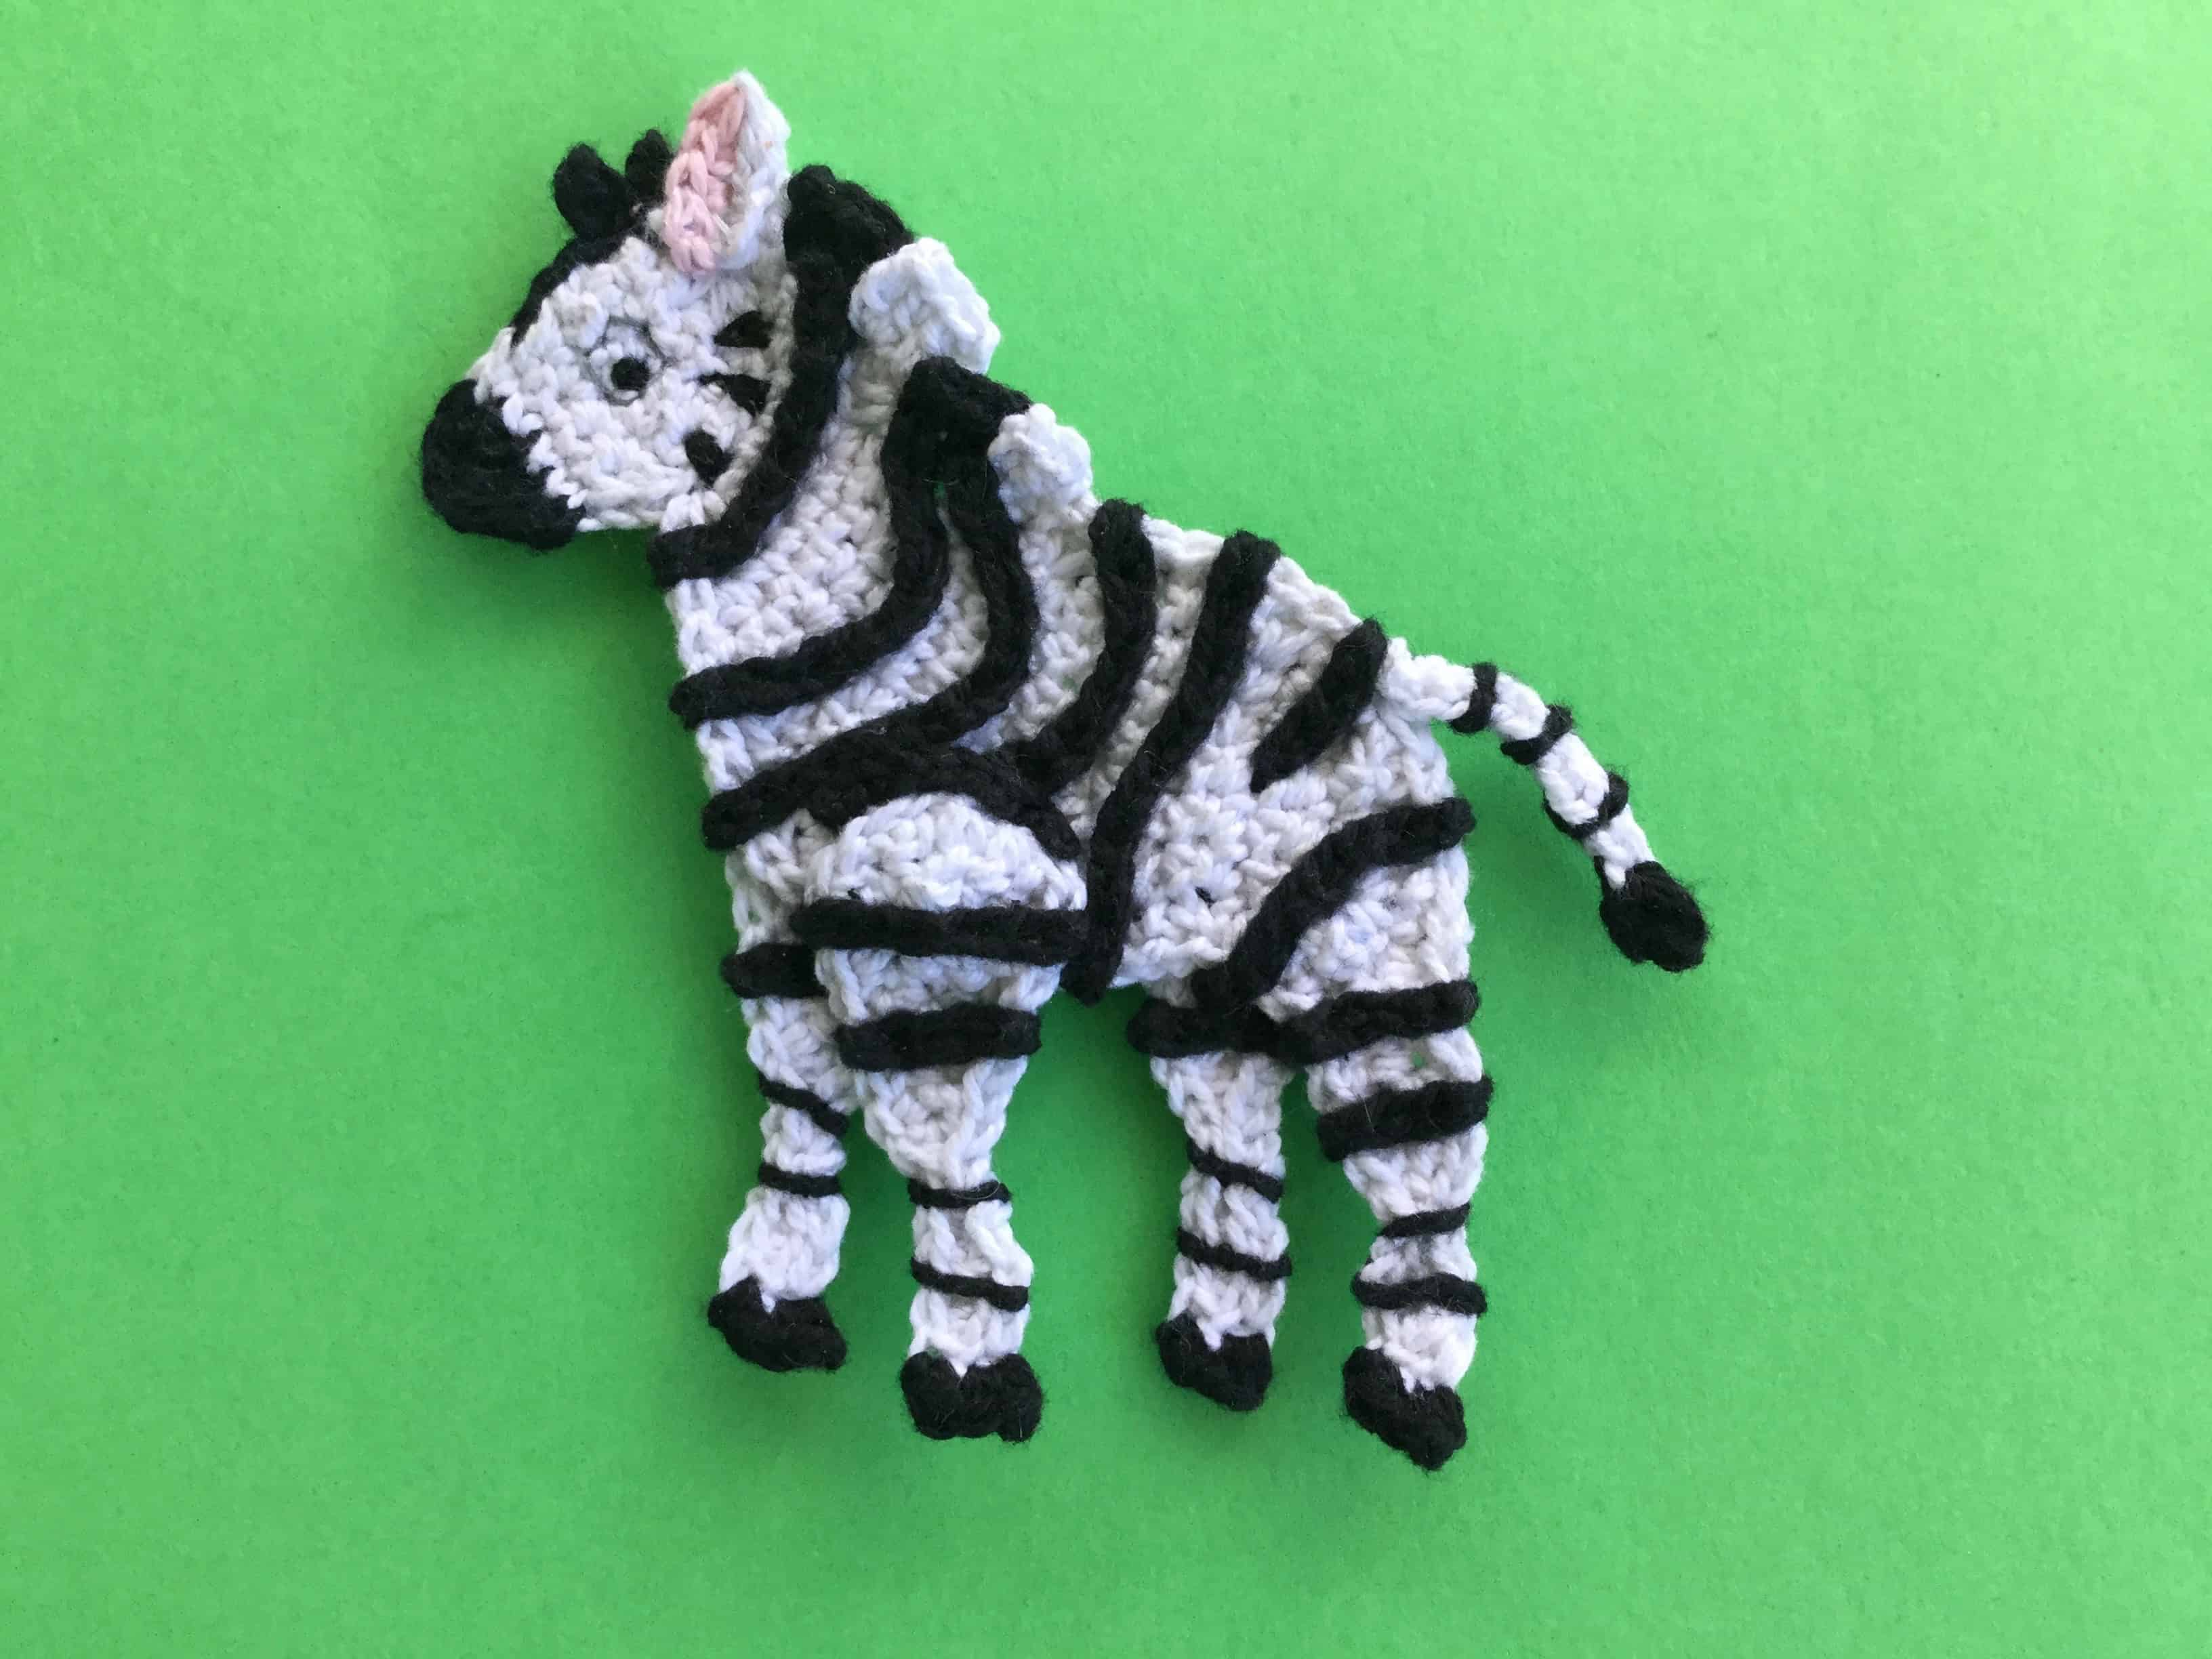 Finished crochet zebra landscape